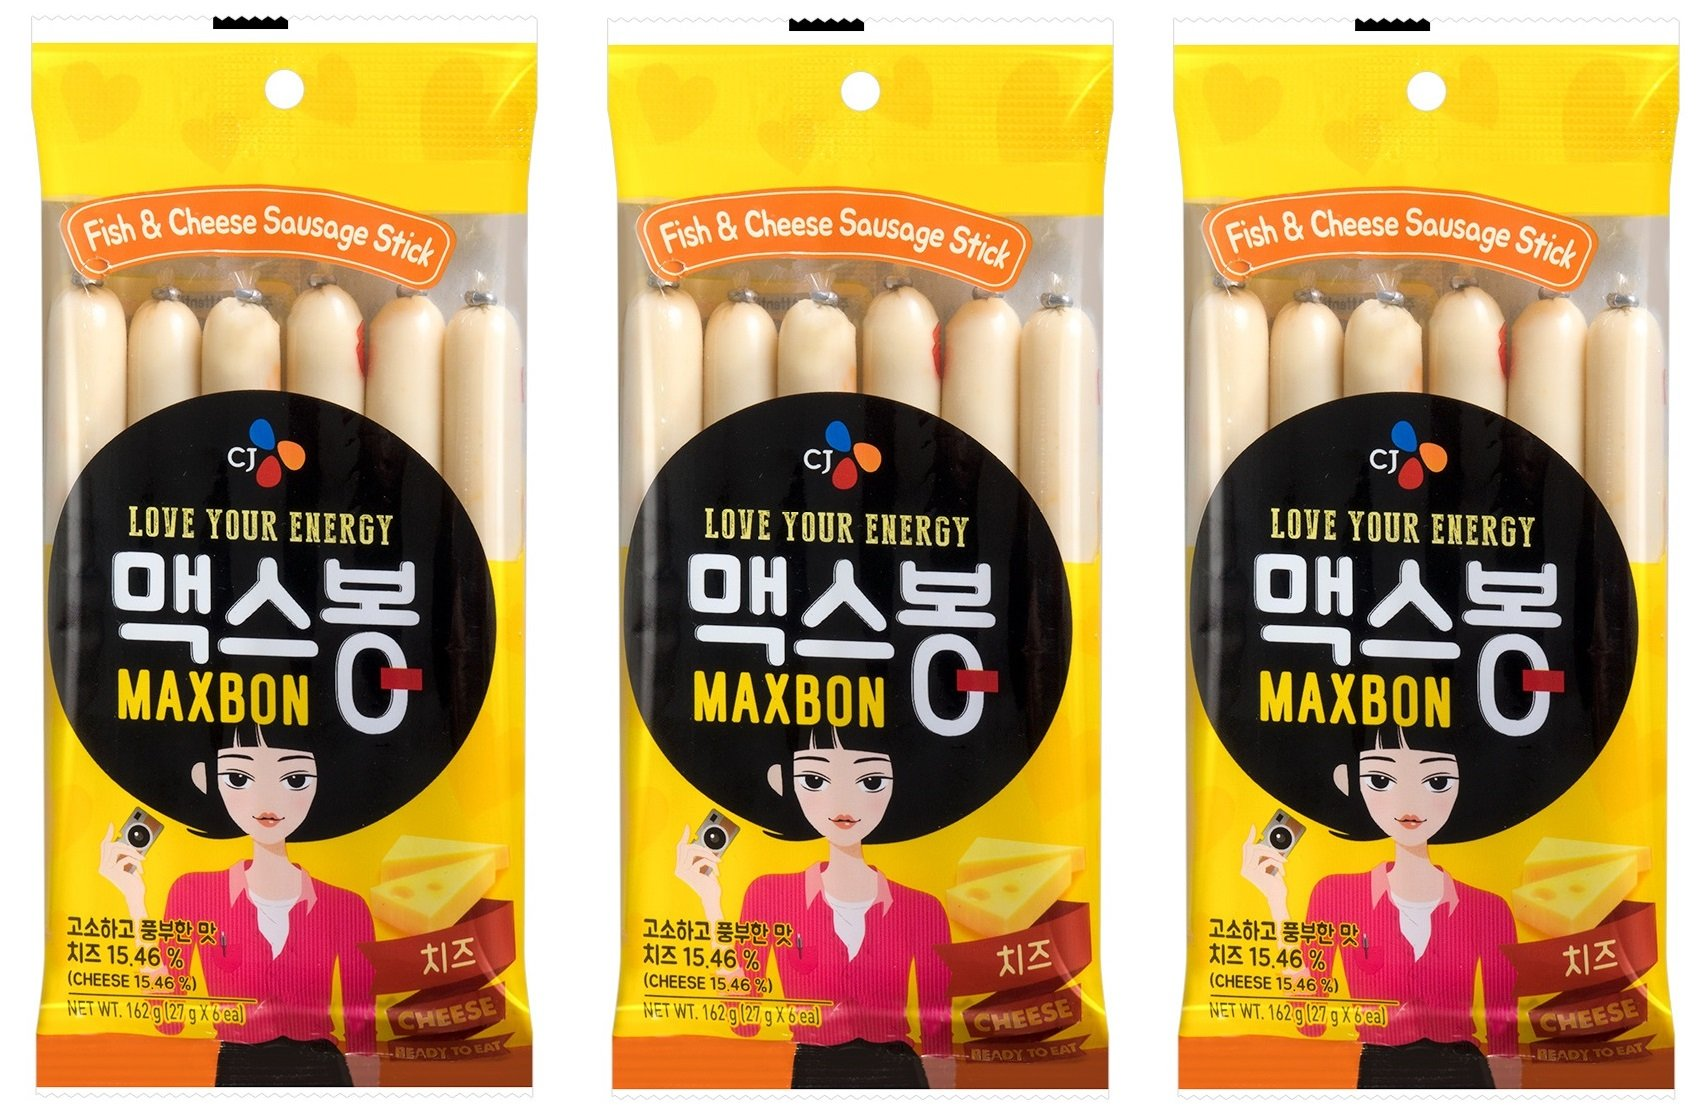 Korean CJ Maxbon Fish & Cheese Sausage Sticks (3 Pack)